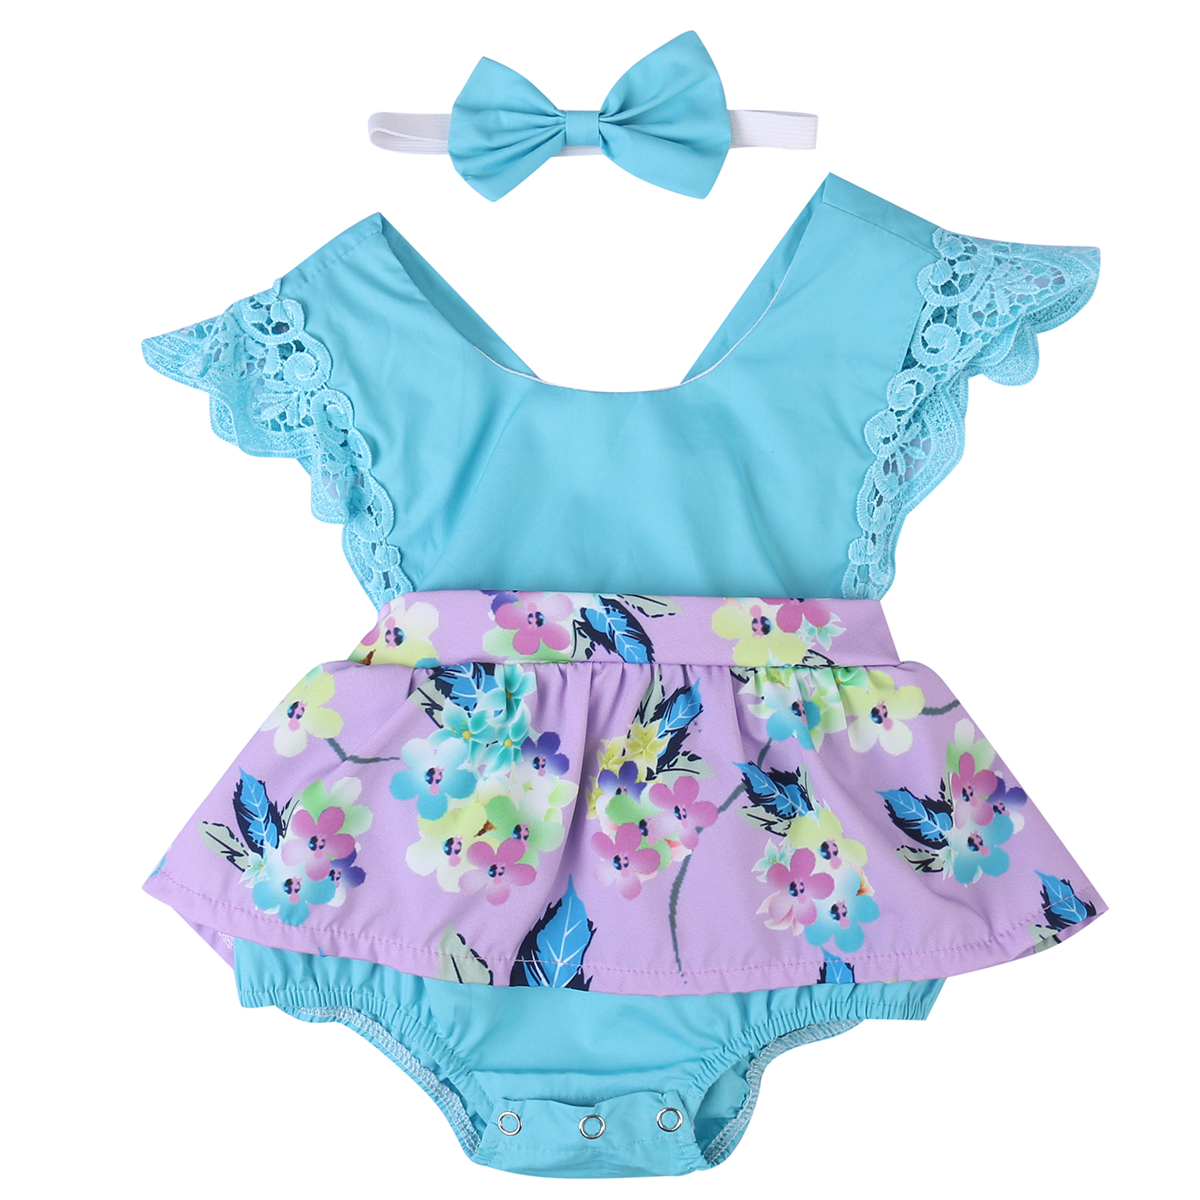 Summer new lovely Newborn Baby Girls Clothes Floral printed lace bodyuist Dress Jumpsuit+bowknot Headband 2pcs cute kid Outfit